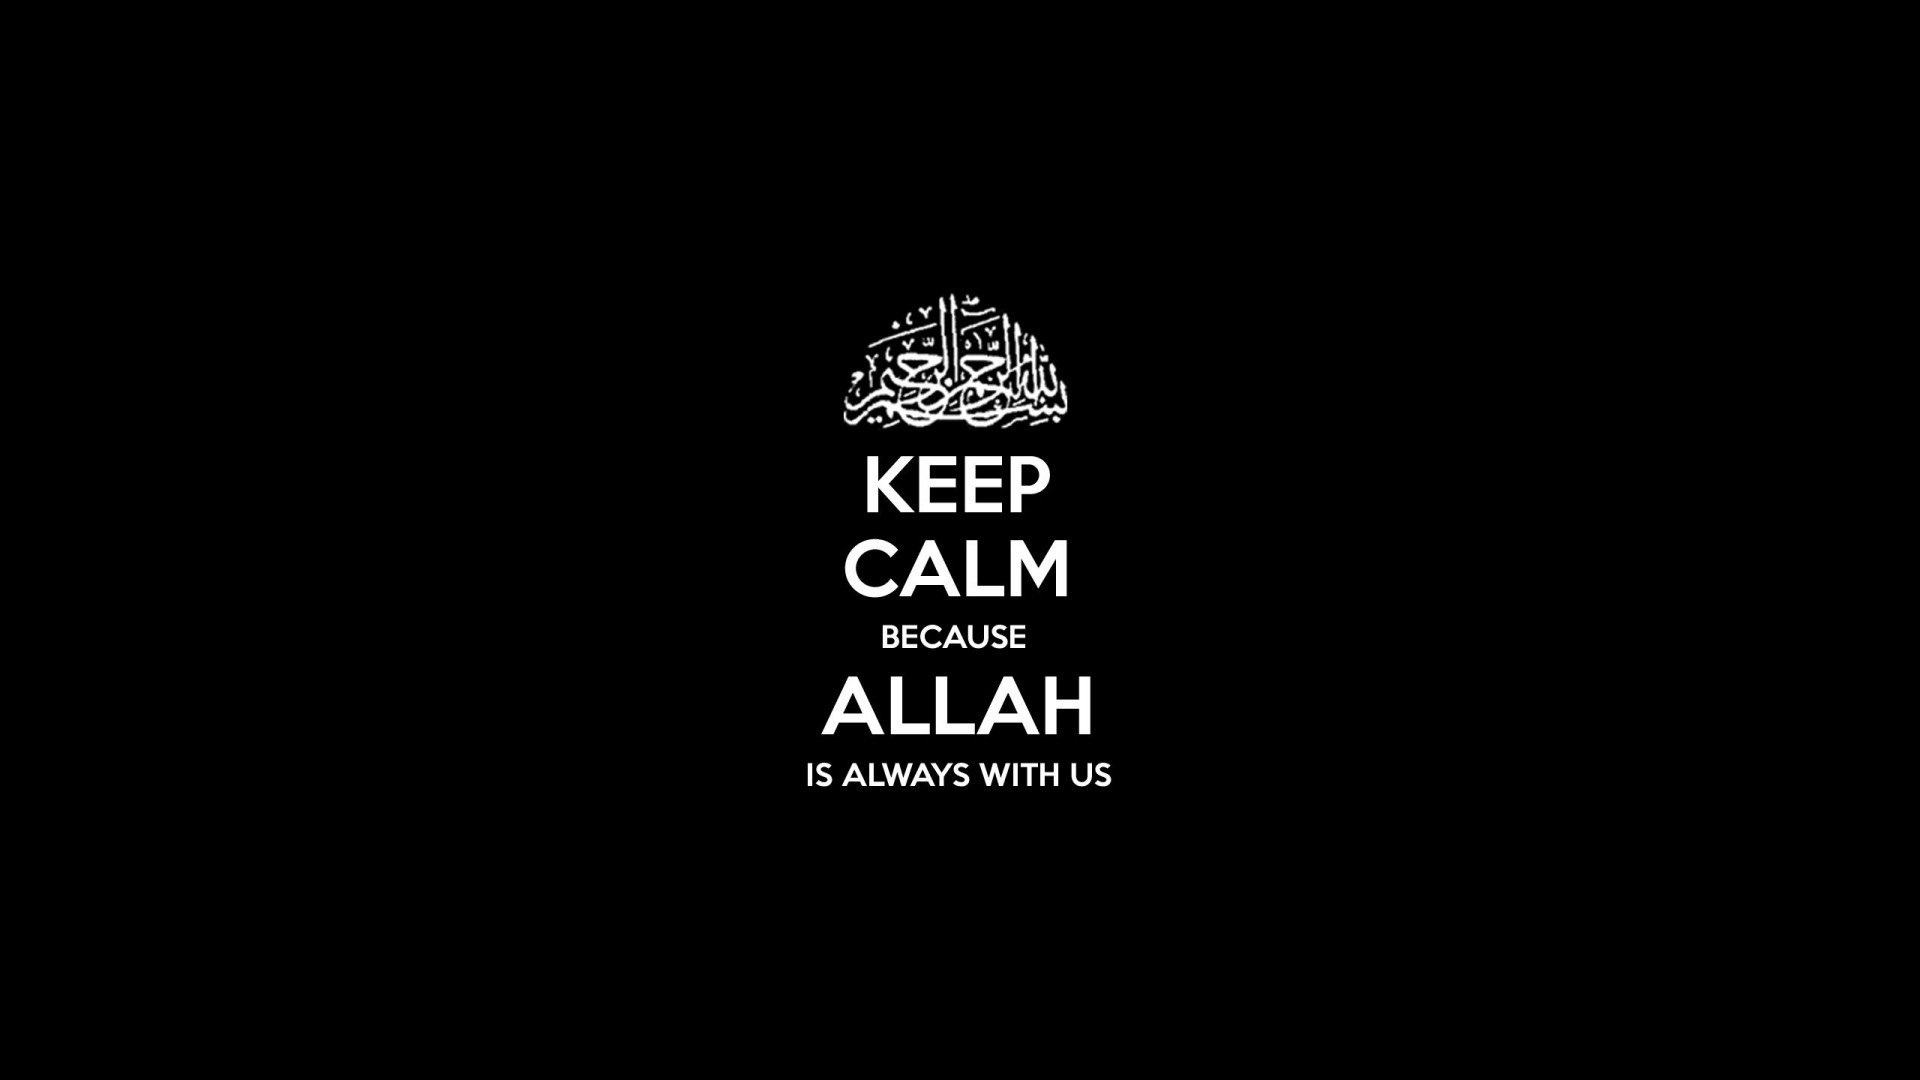 Allah quote #2